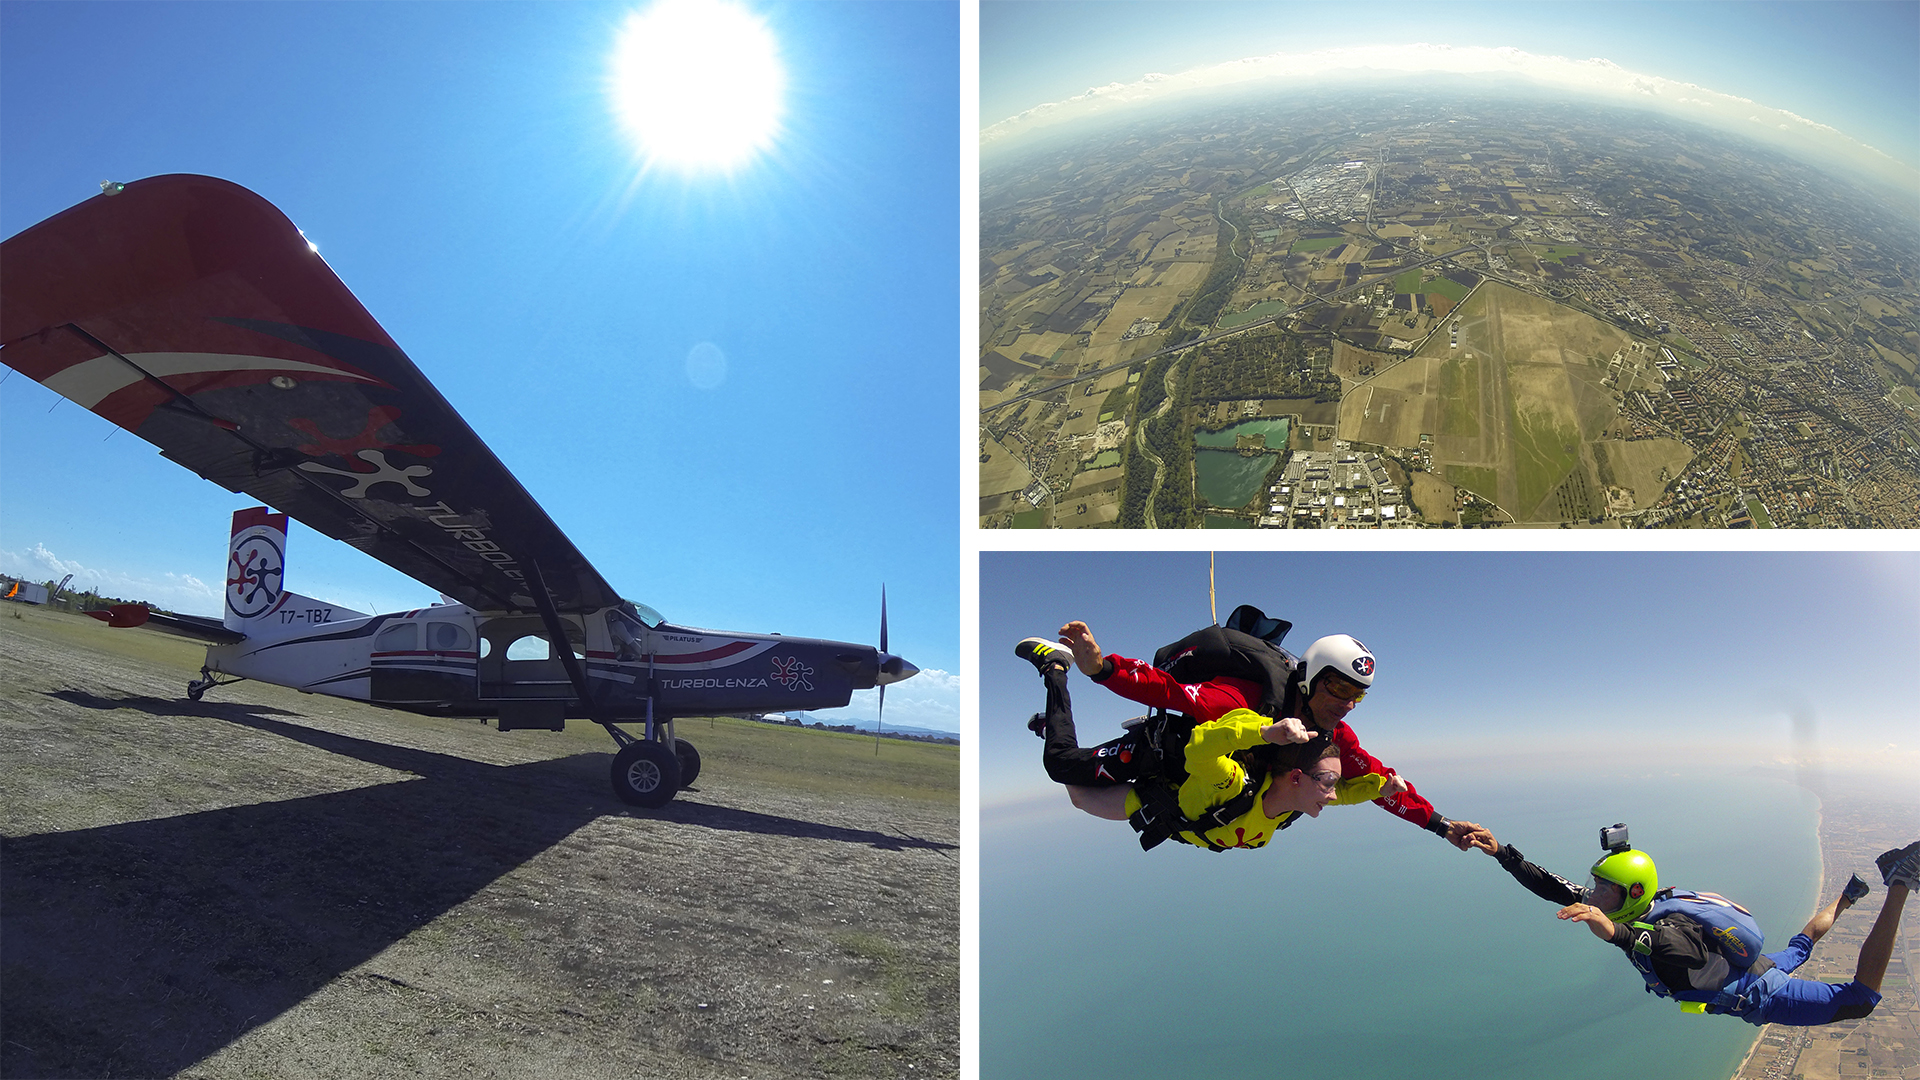 My favourite part of the trip: Skydiving in Fano!